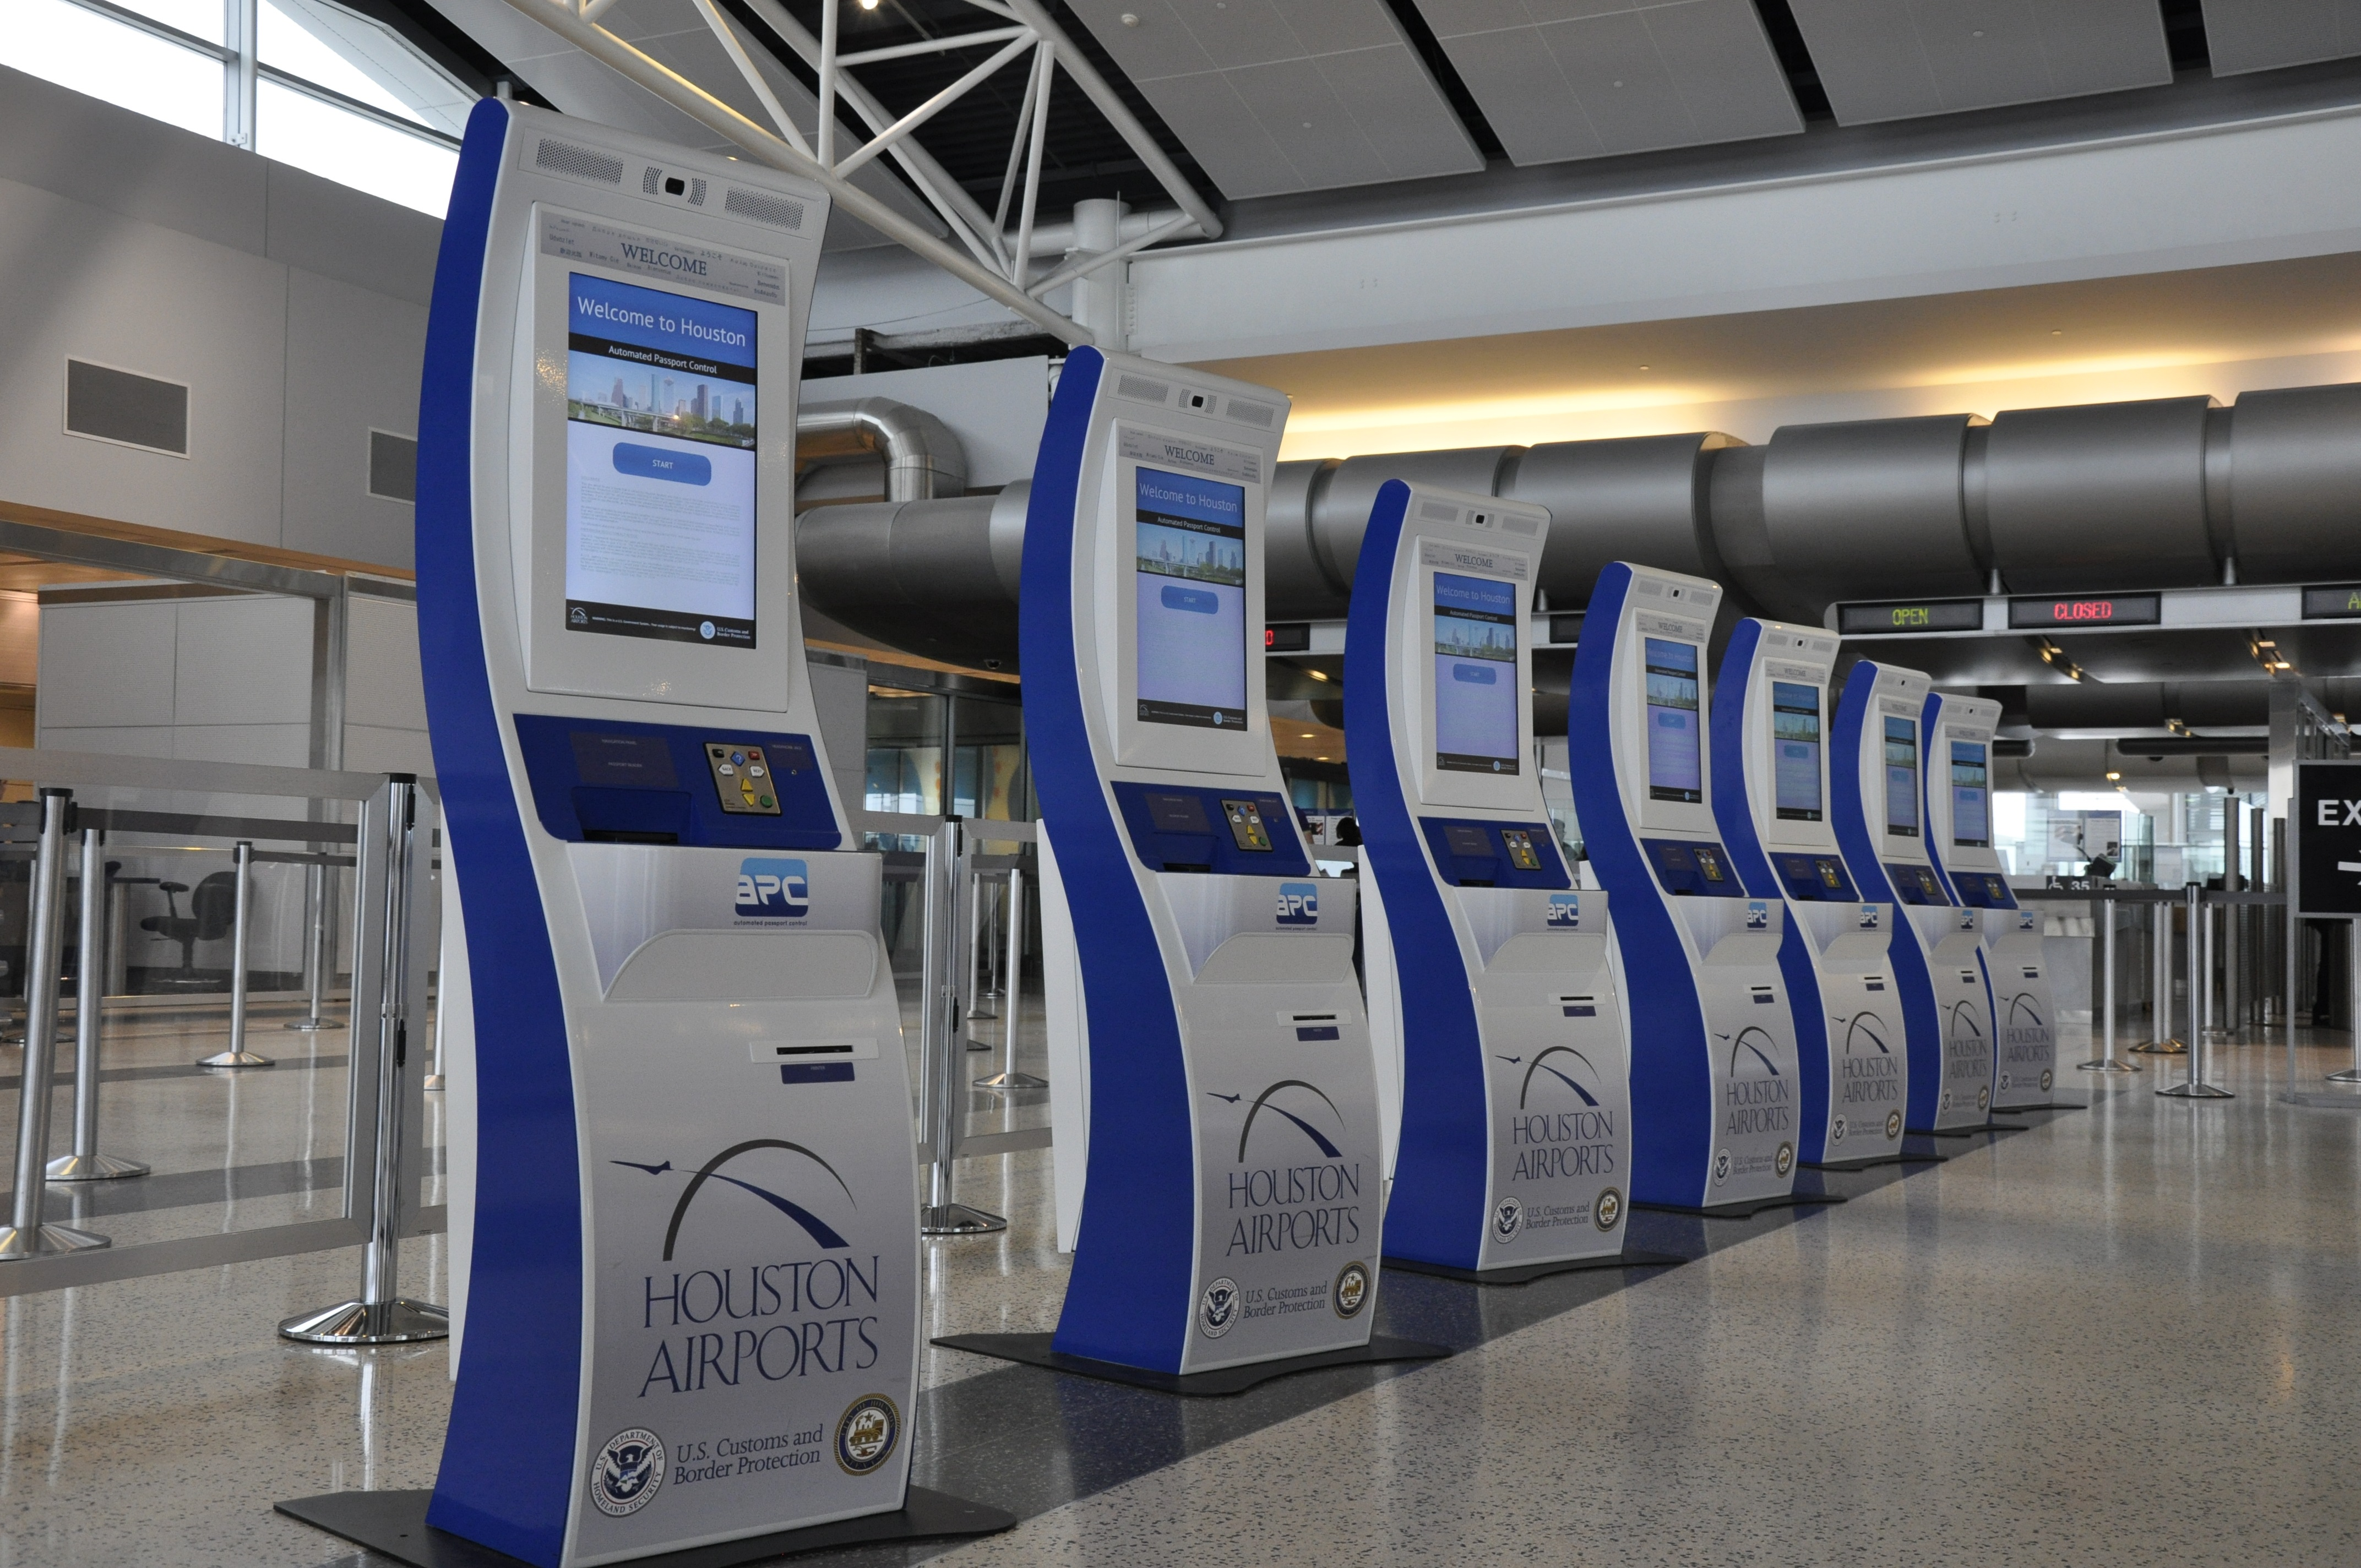 Houston Airport Cbp Bring New Technology To George Bush